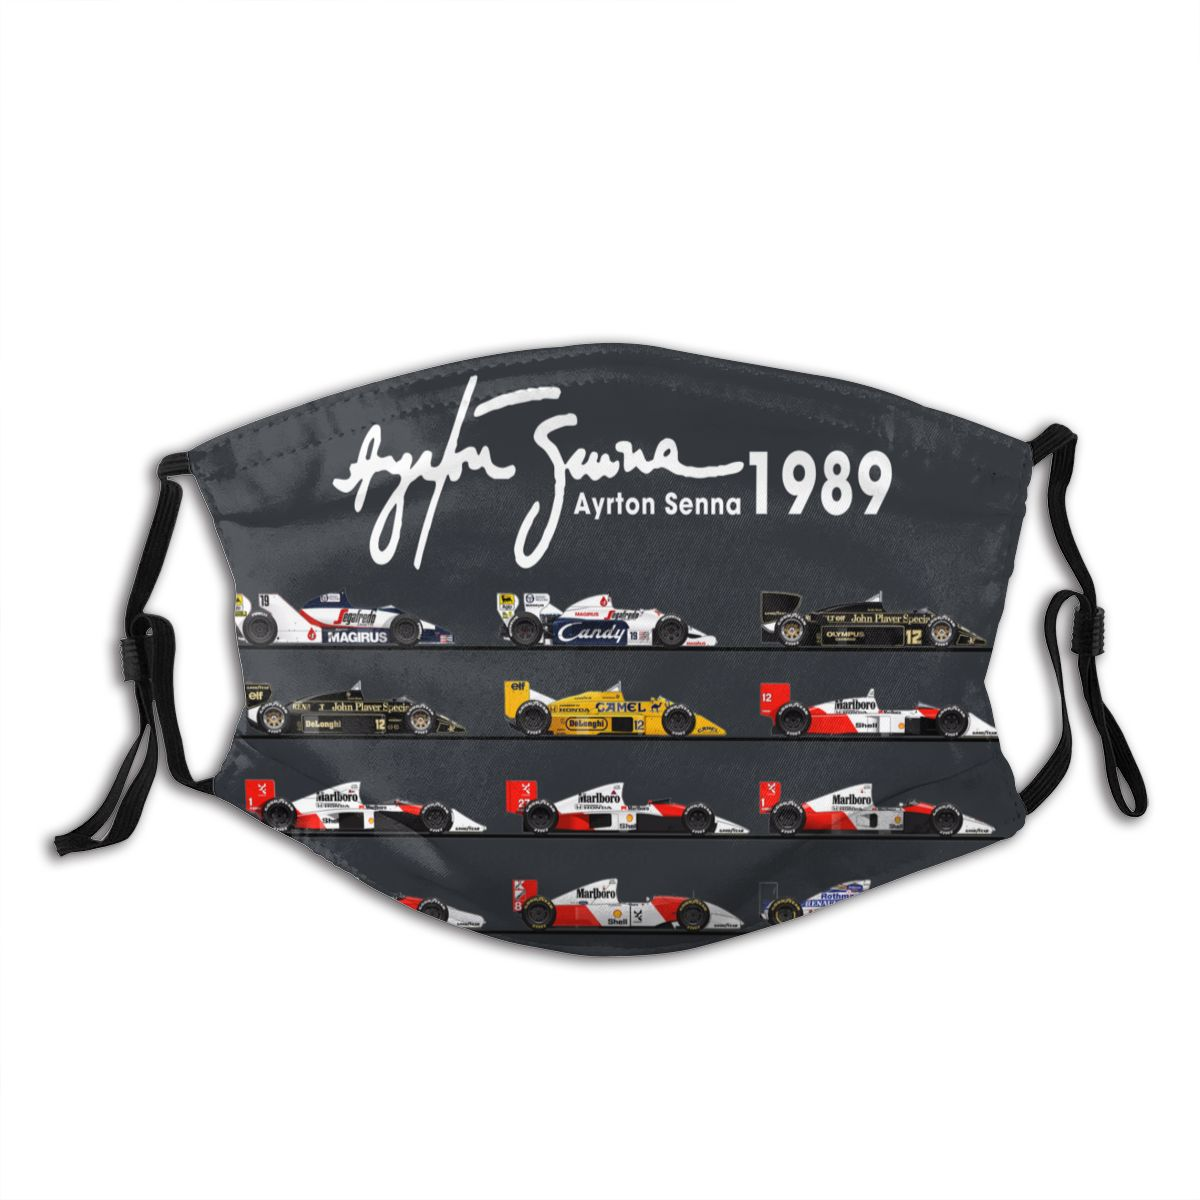 Ayton Senna Formula Racing Car Reusable Mouth Face Mask Anti Haze Dustproof Mask Protection Cover Respirator Mouth Muffle